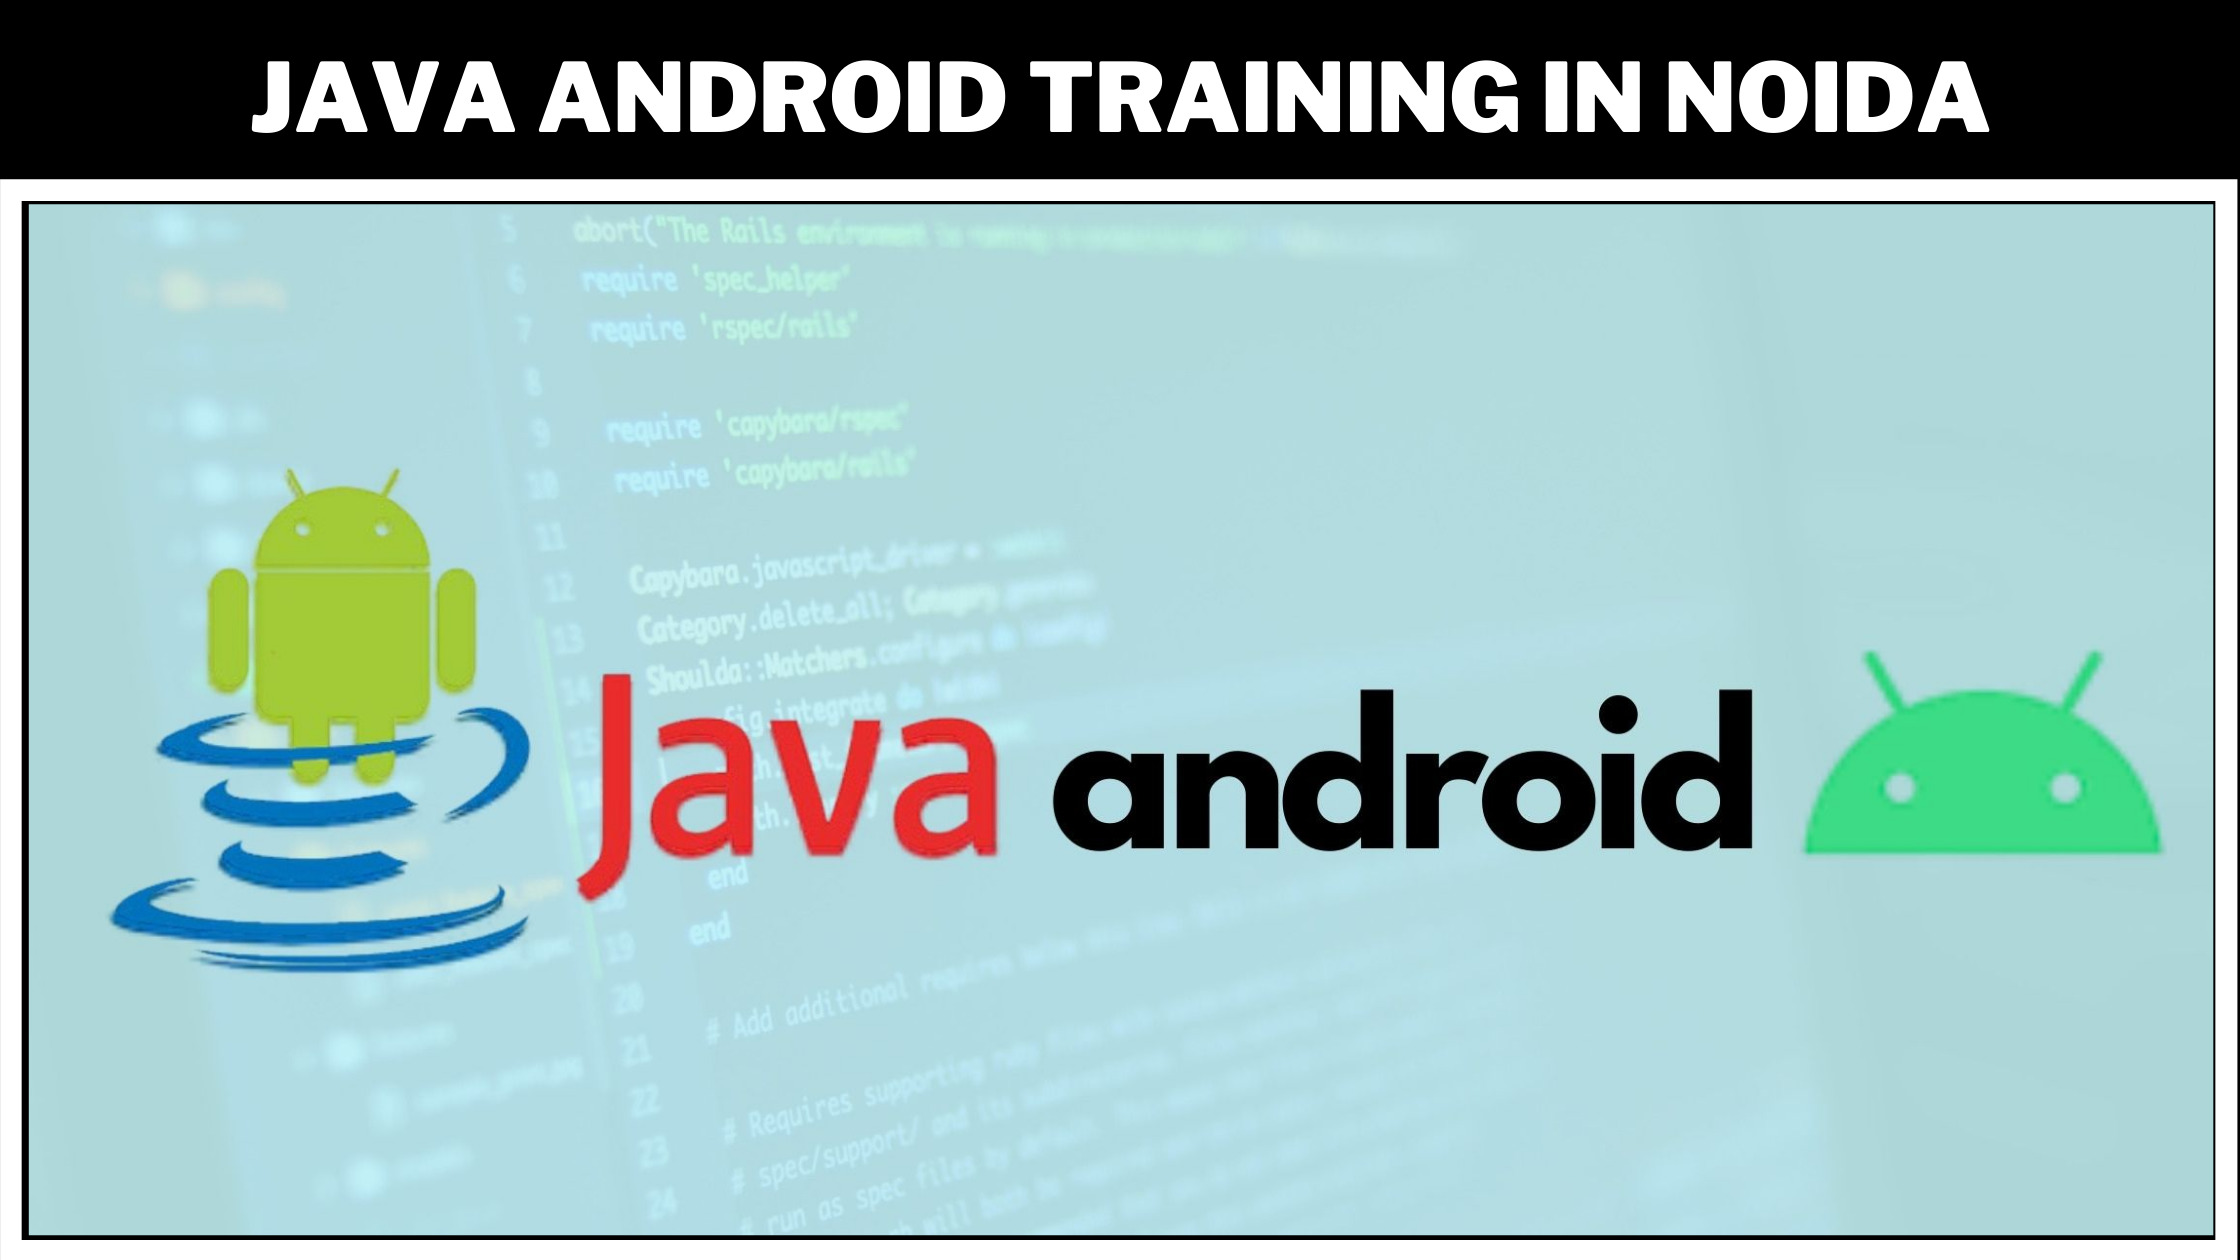 java_android_training_in_noida-background.jpeg